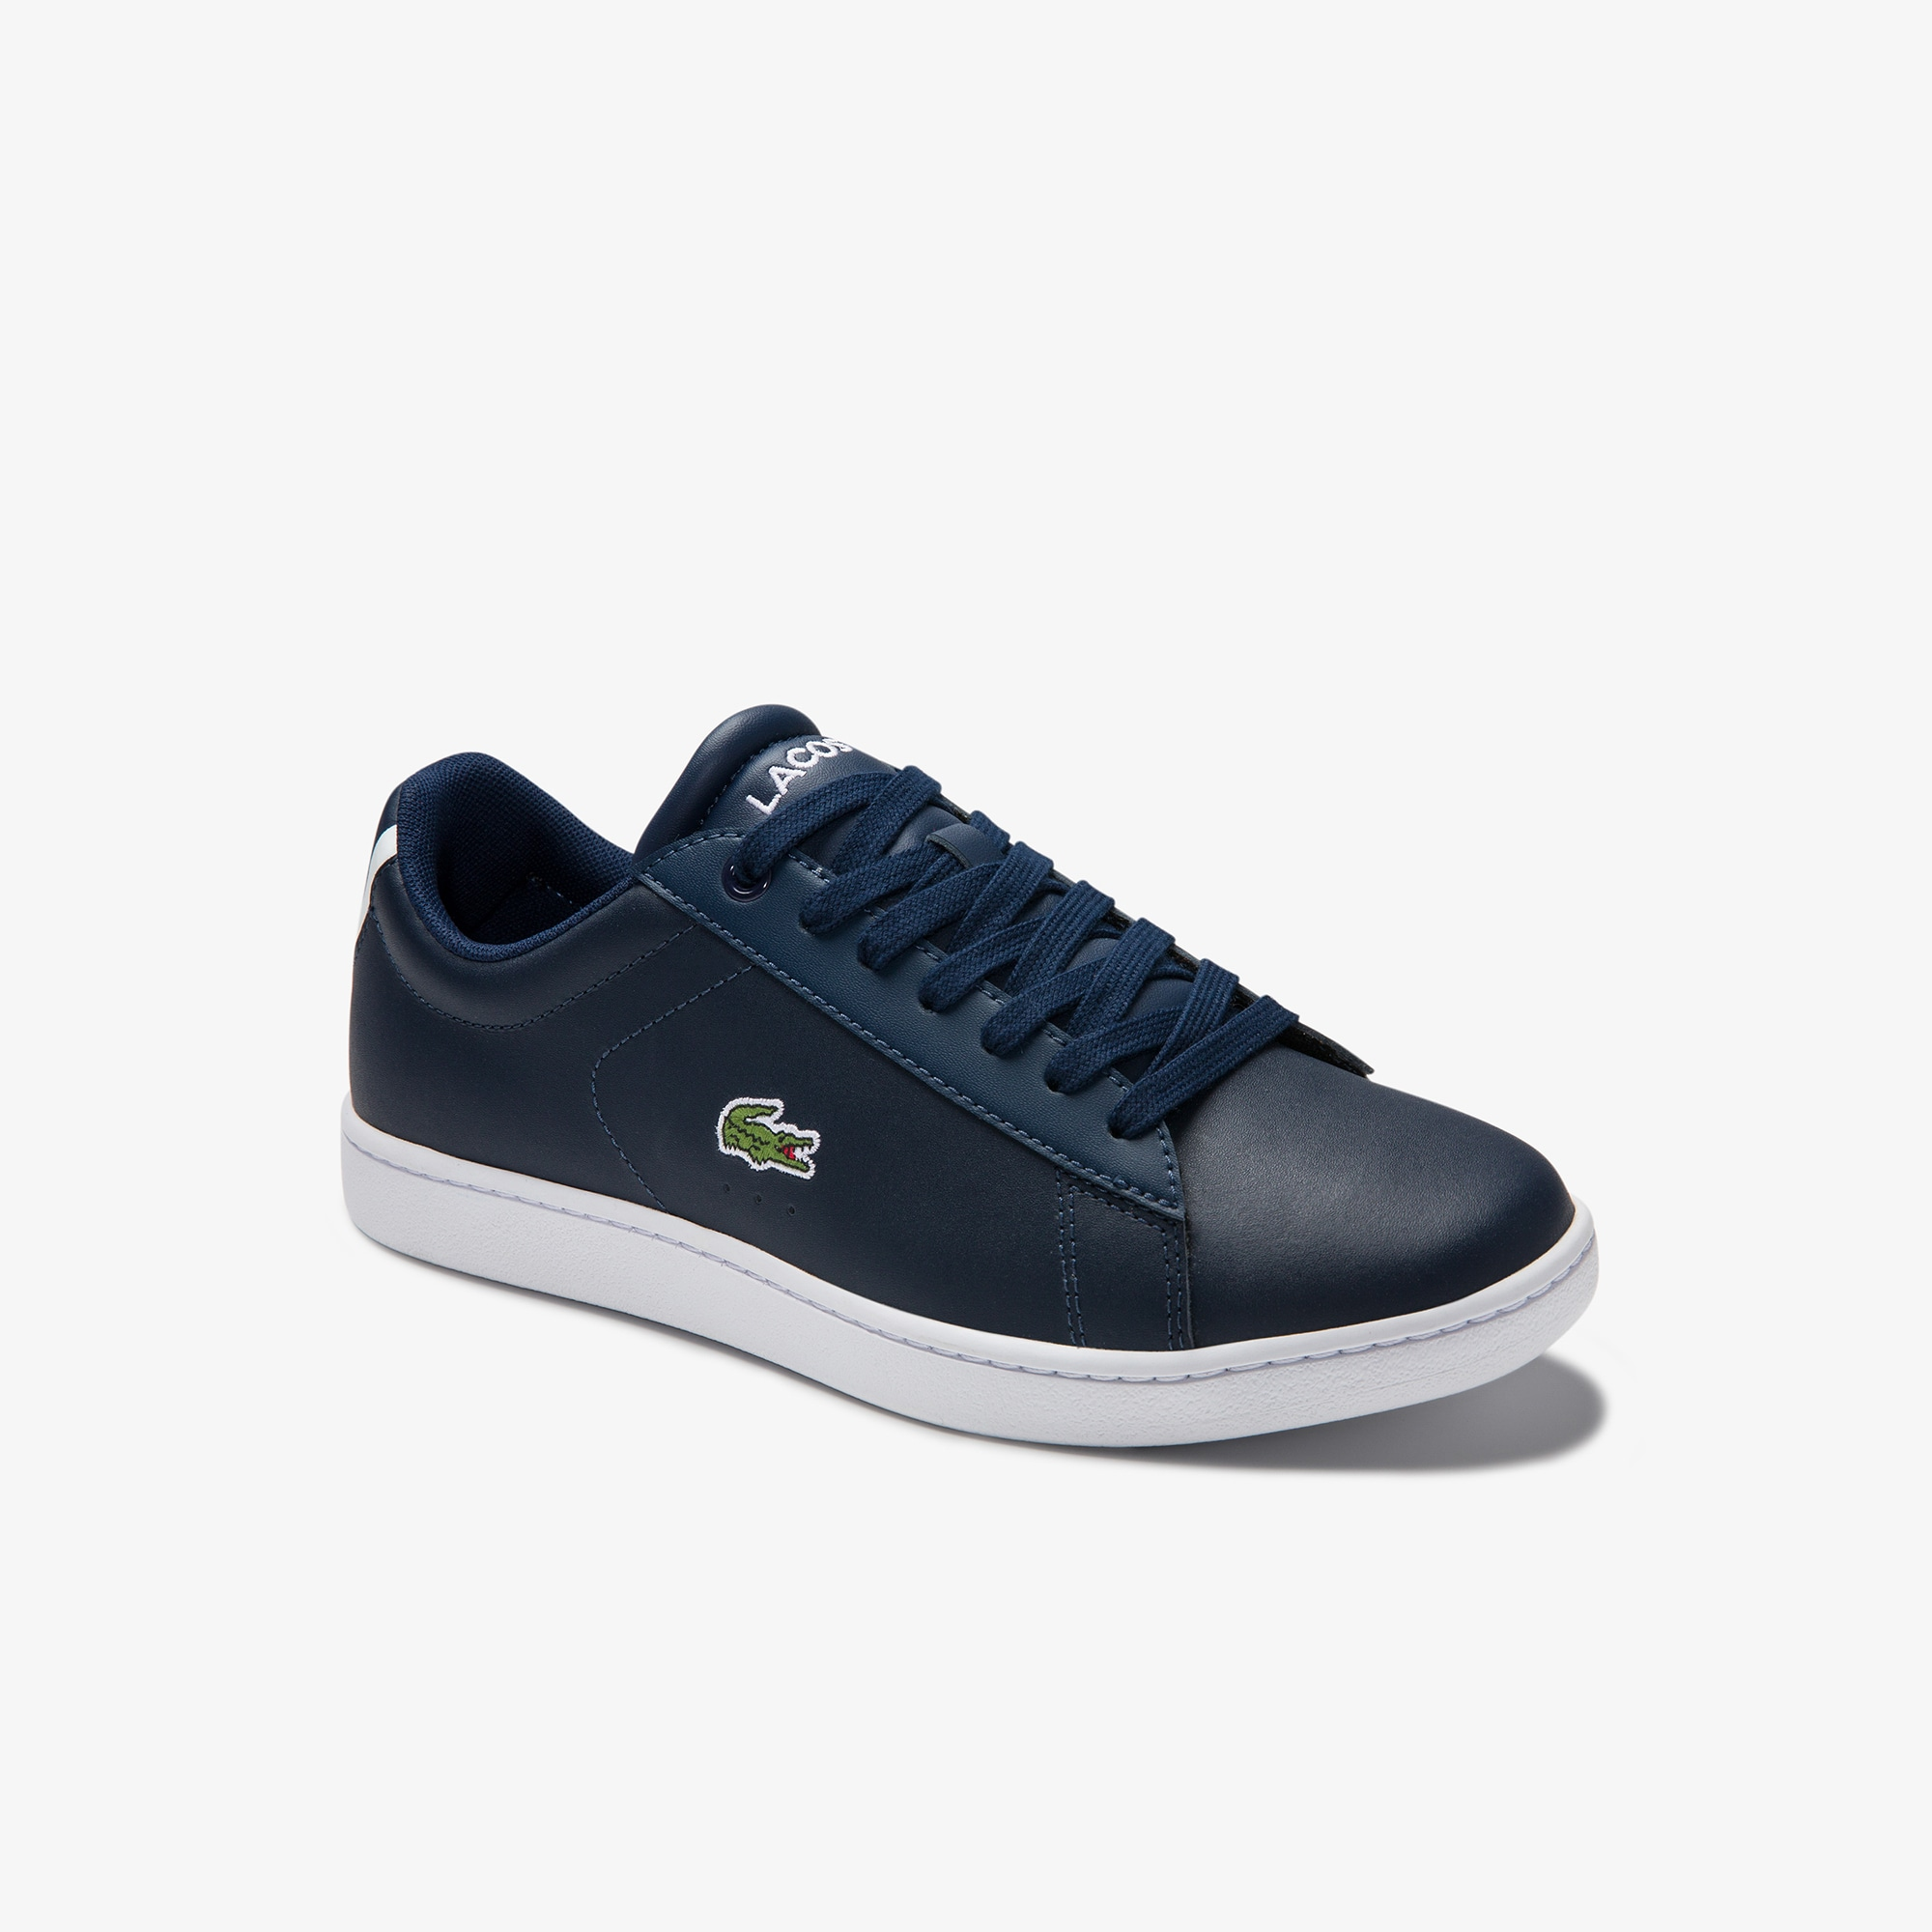 baf824520a4 Polo shirts, shoes, leather goods | LACOSTE Online Boutique